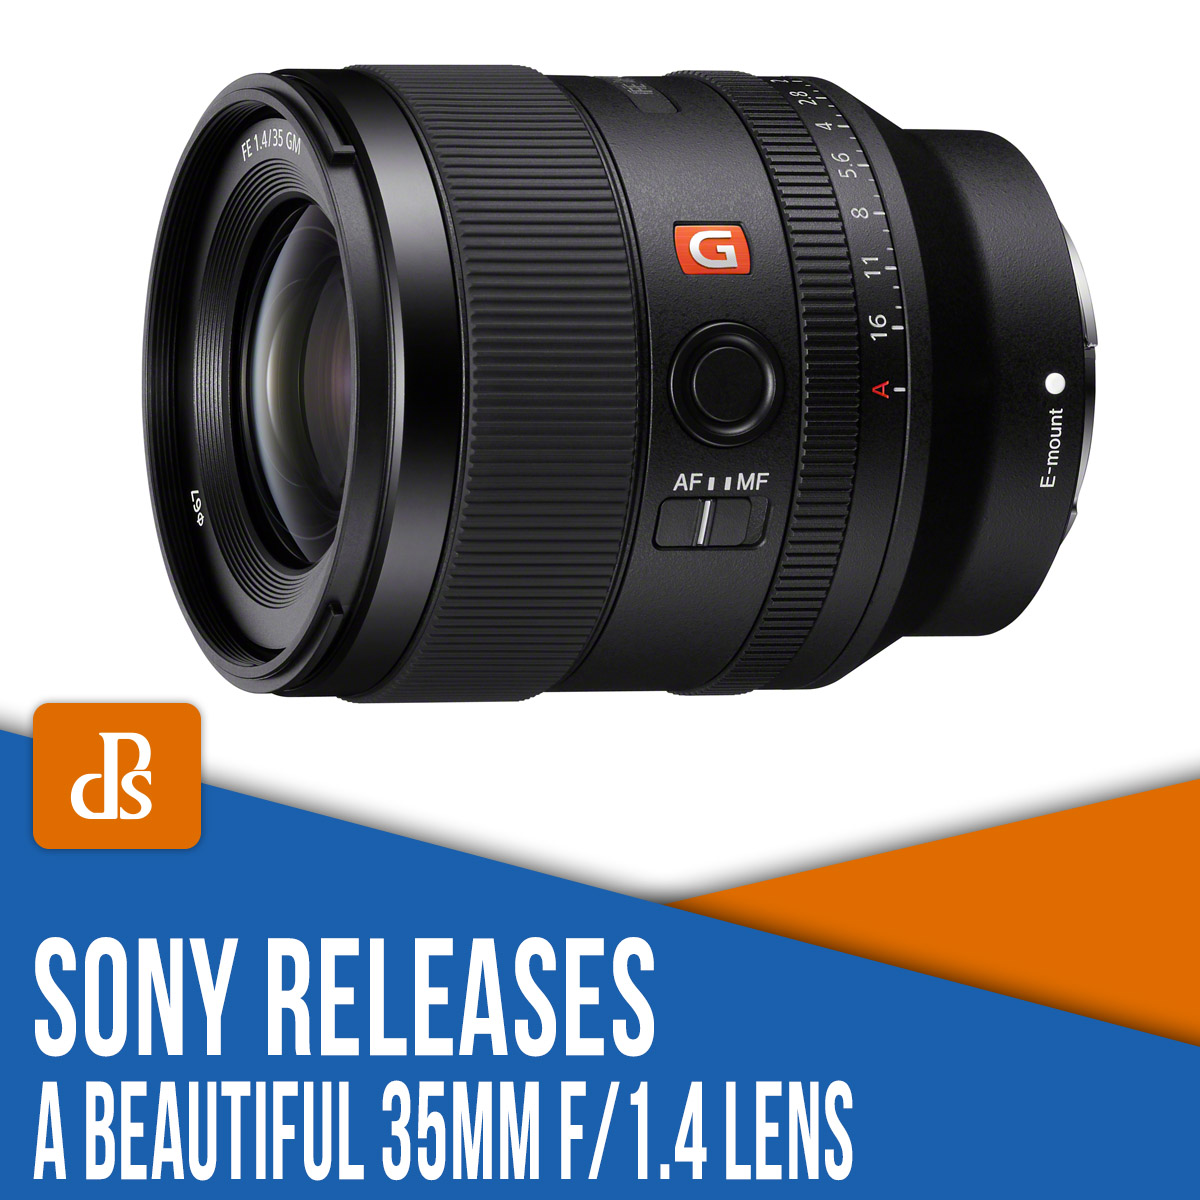 https://i1.wp.com/digital-photography-school.com/wp-content/uploads/2021/01/sony-releases-35mm-f1-4-1201.jpg?resize=1200%2C1200&ssl=1